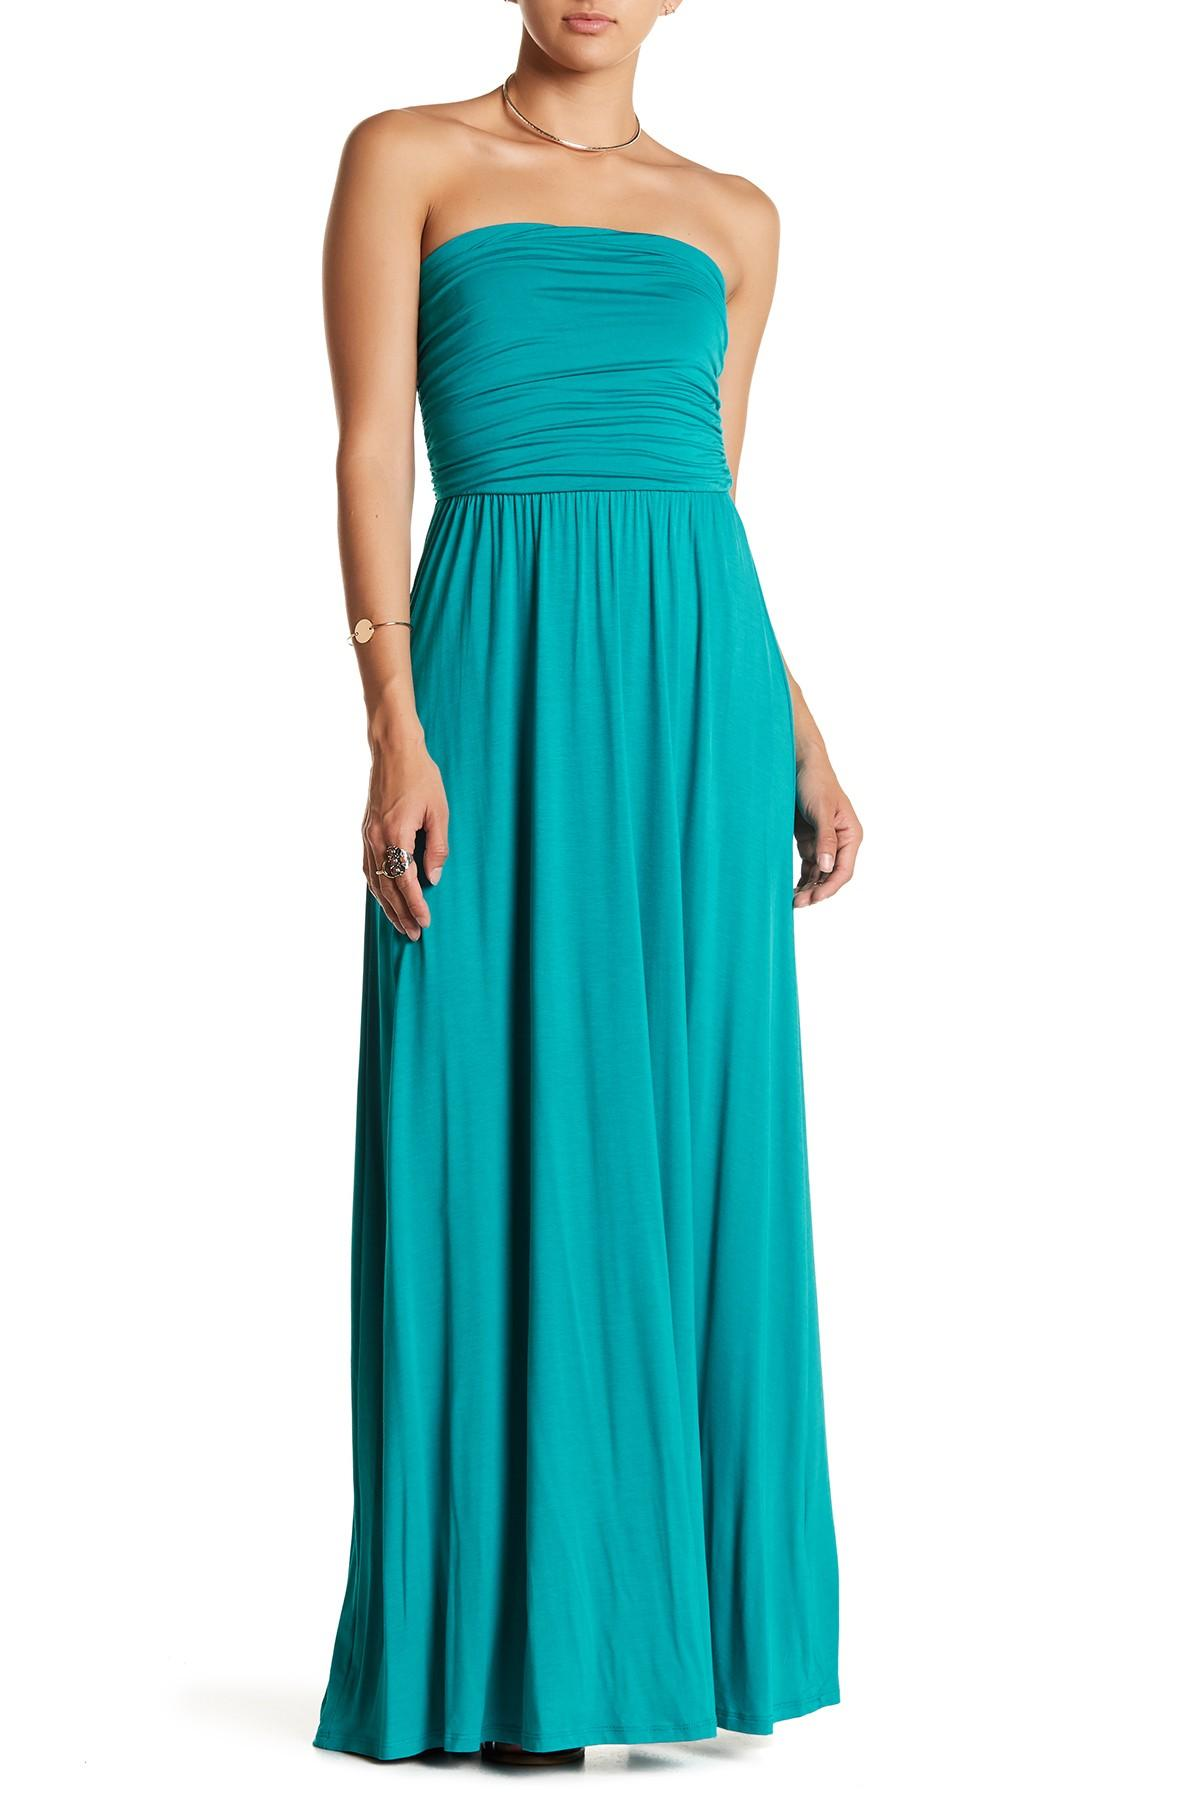 b08d1bd1bfe West Kei Strapless Maxi Dress in Blue - Lyst